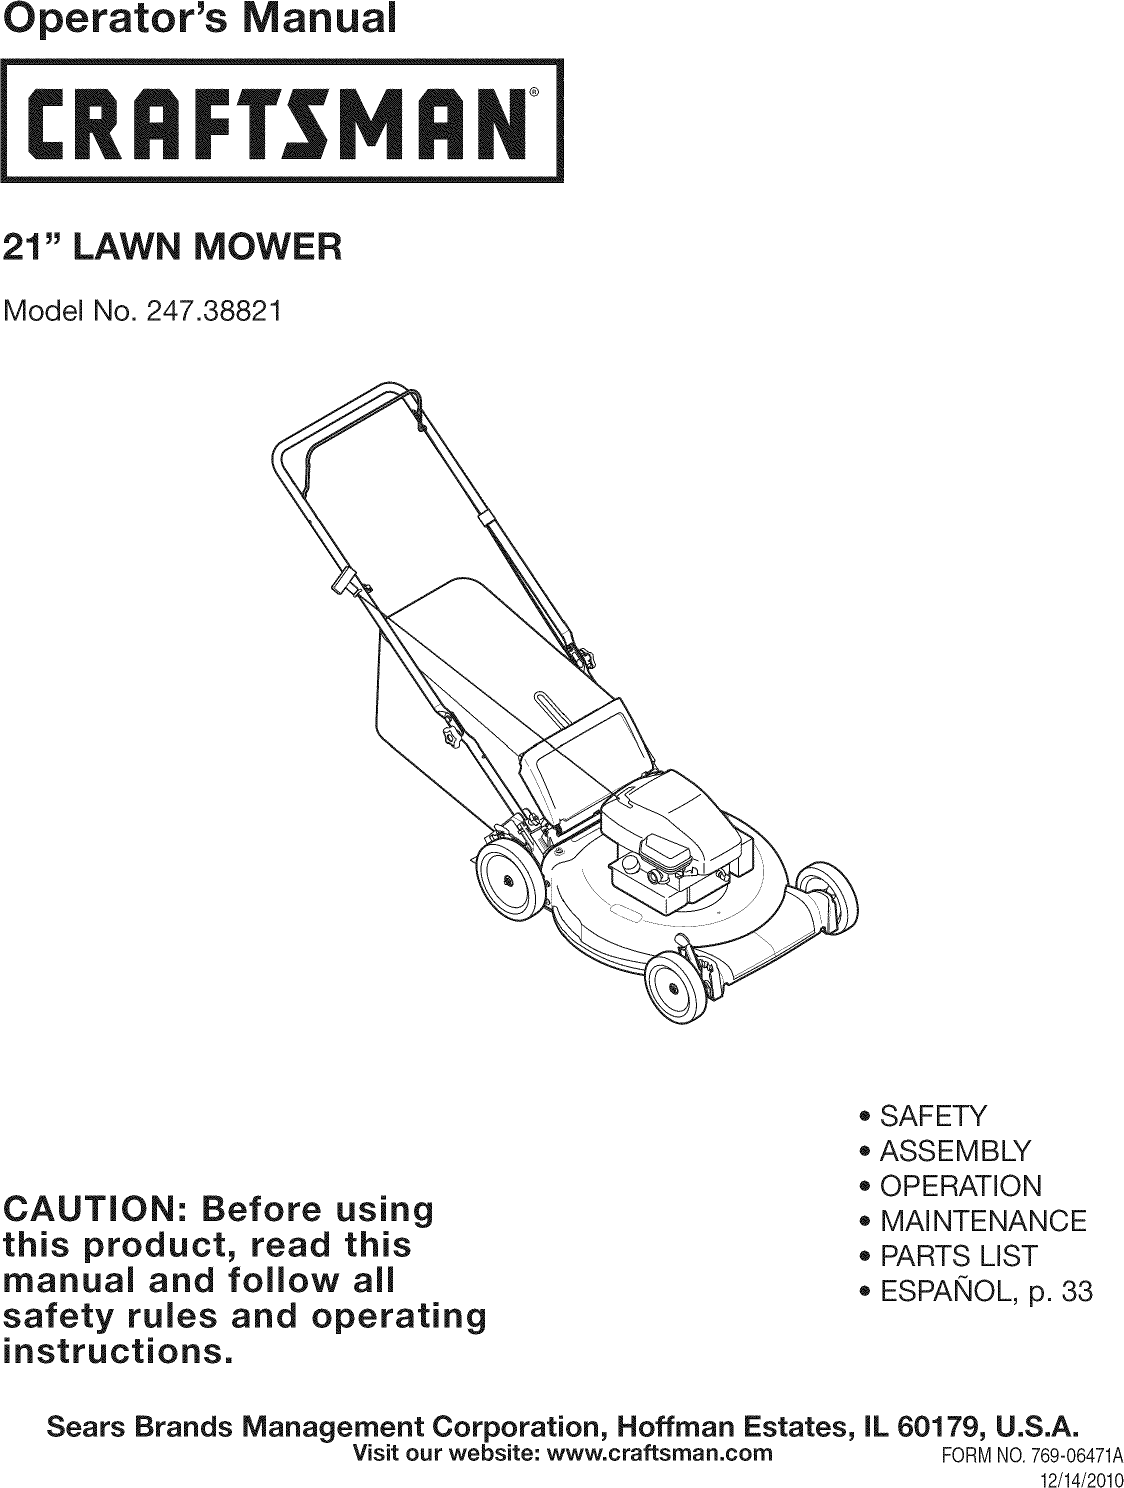 Mtd 11a A15a099 User Manual Lawn Mower Manuals And Guides 1012495l Parts Diagram On List For